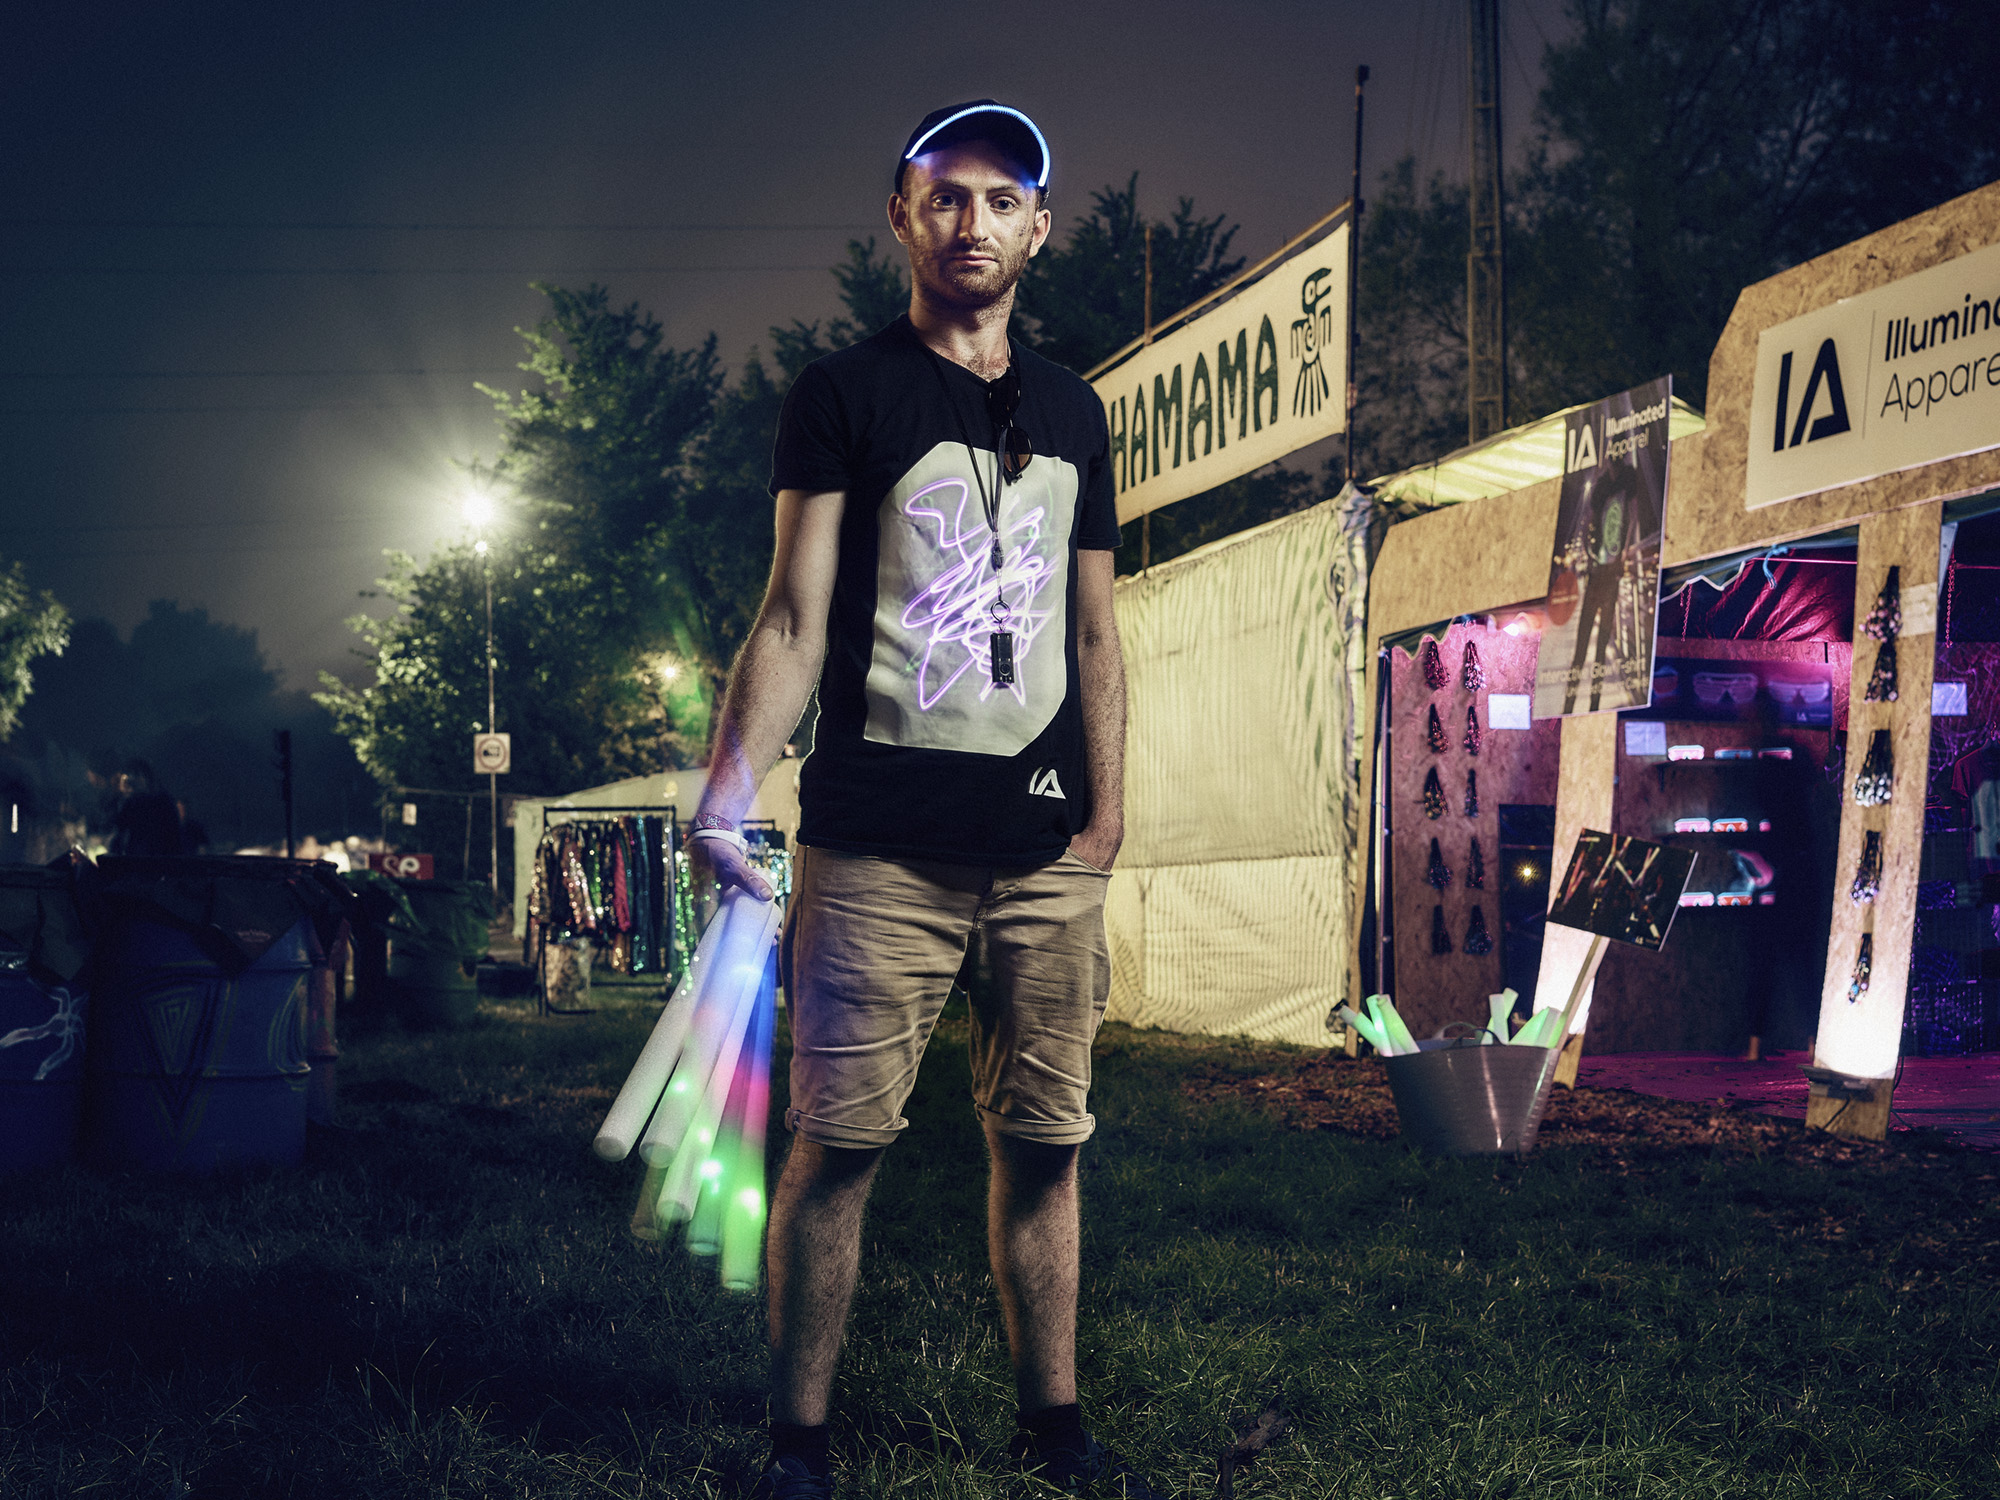 Rob - Illuminated Apparel: stall holder working late into every night.